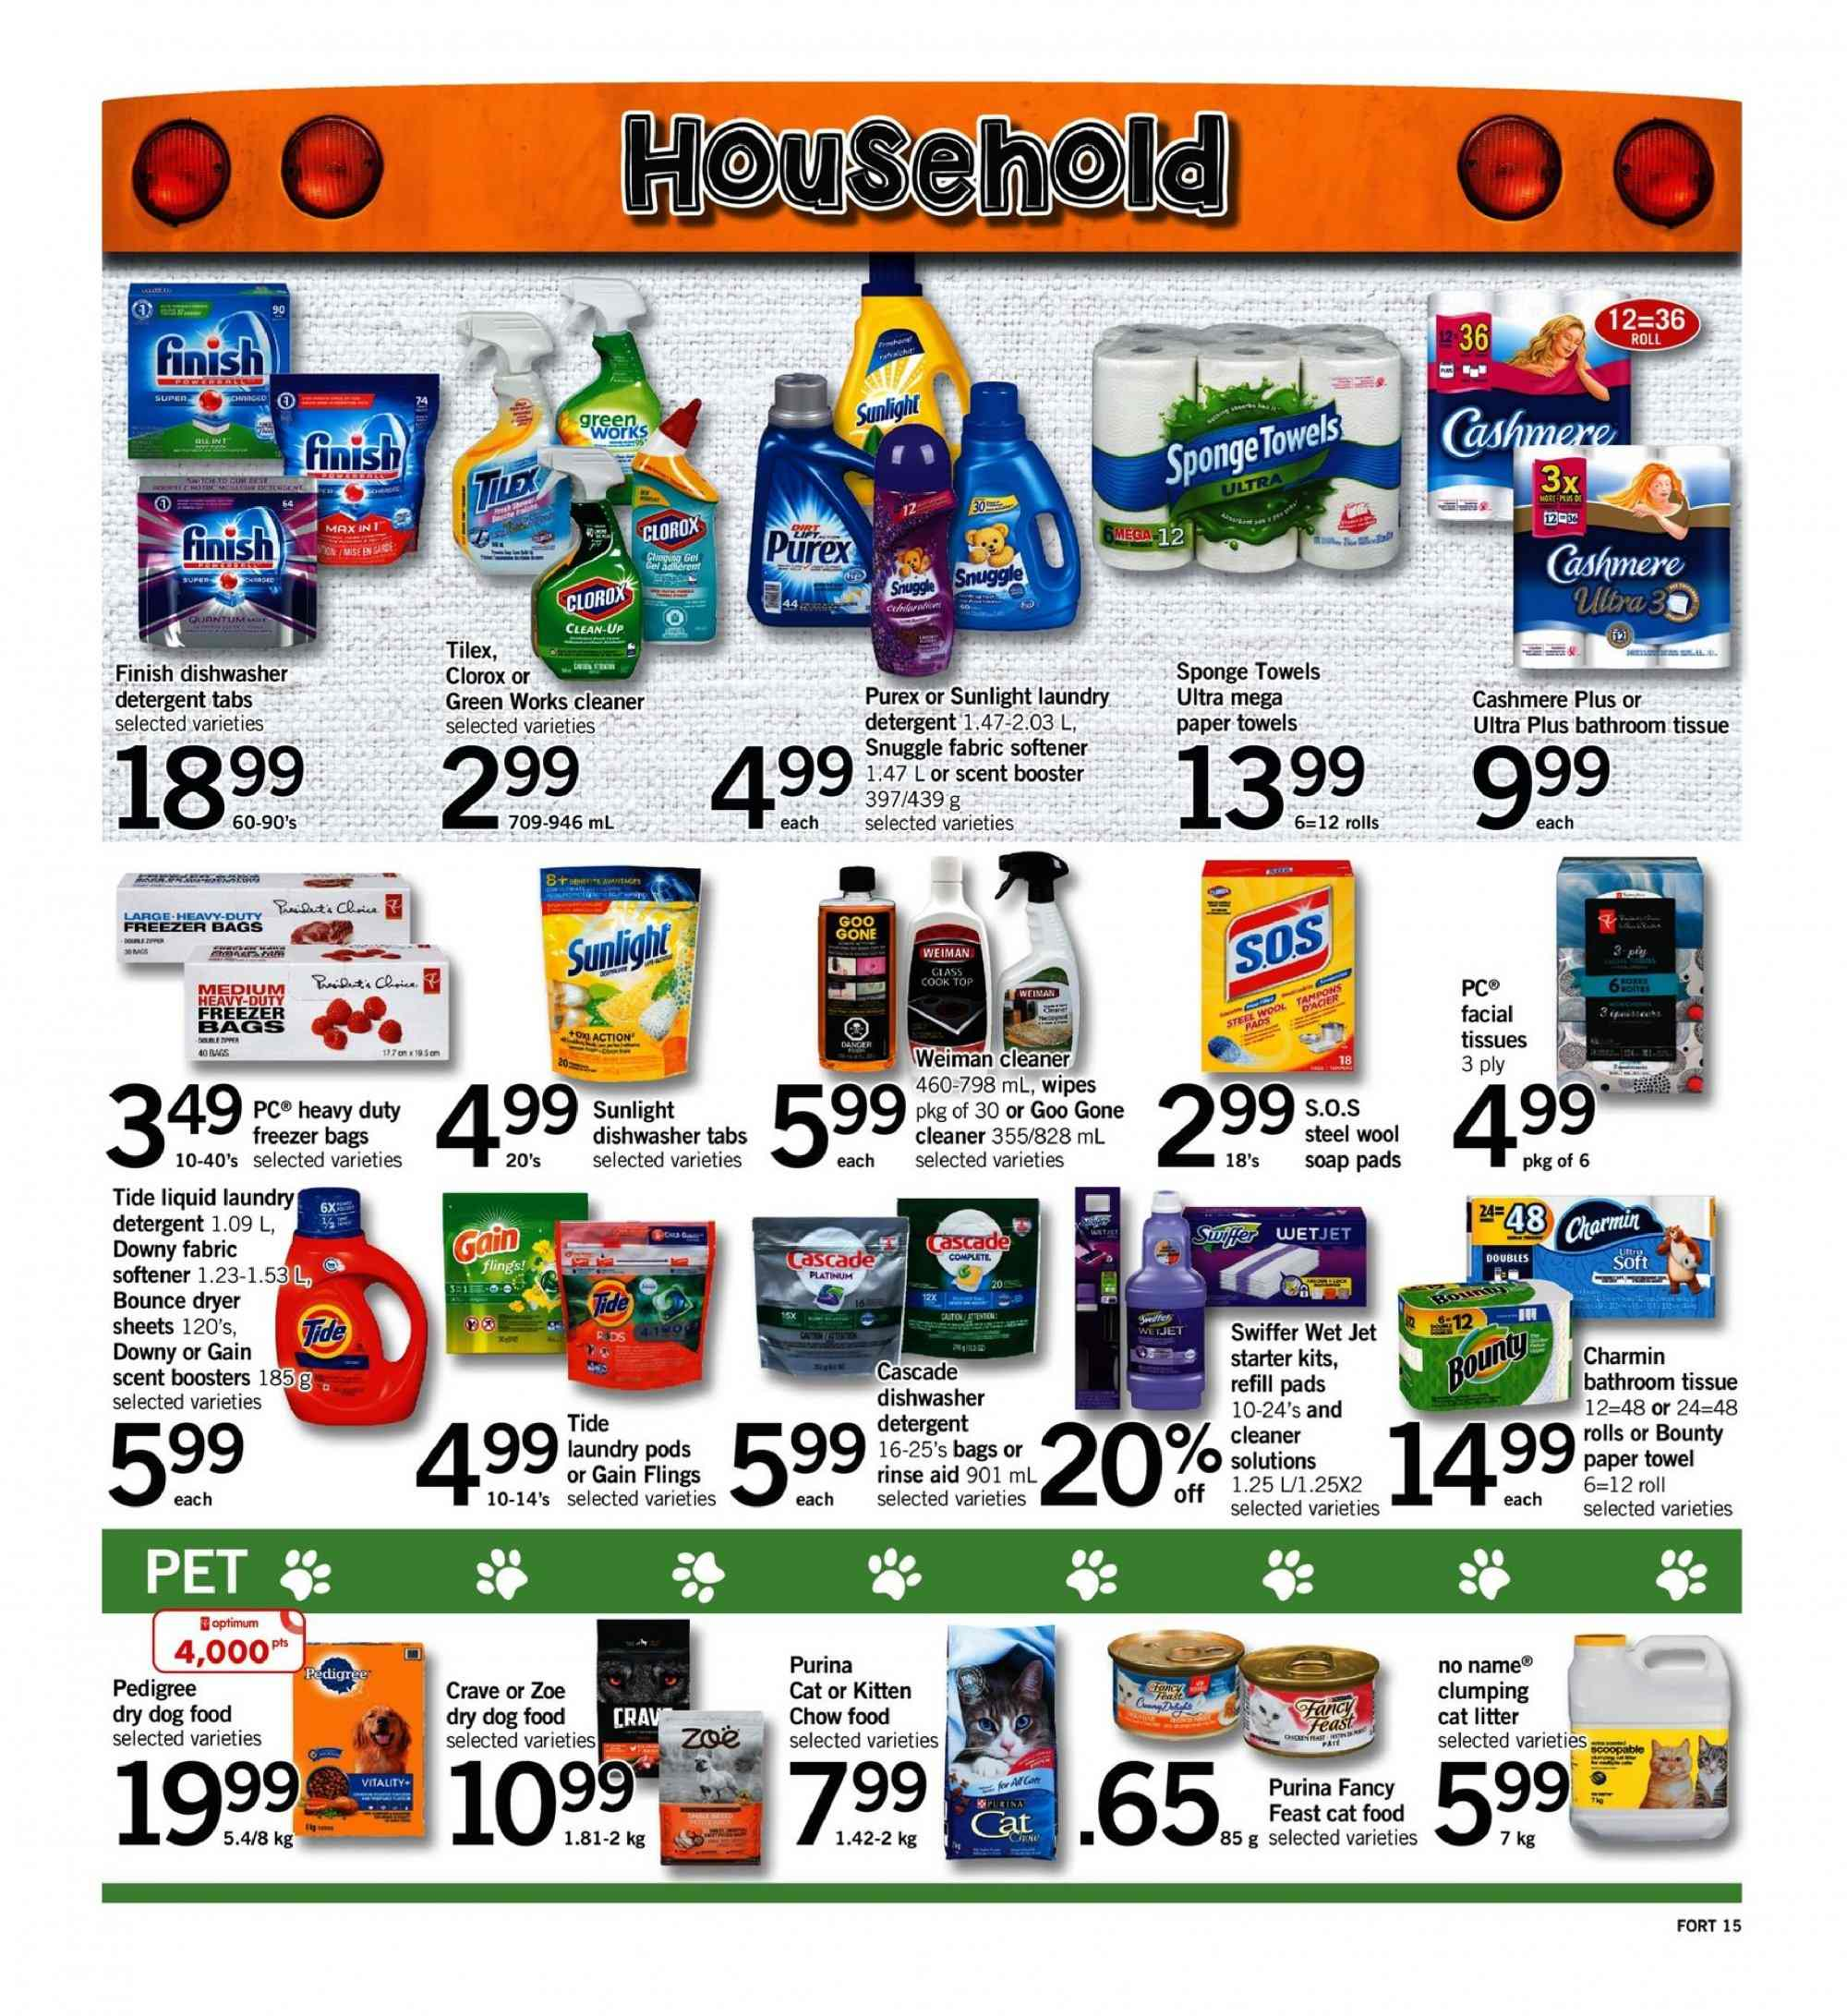 Fortinos Flyer  - September 06, 2018 - September 12, 2018. Page 15.